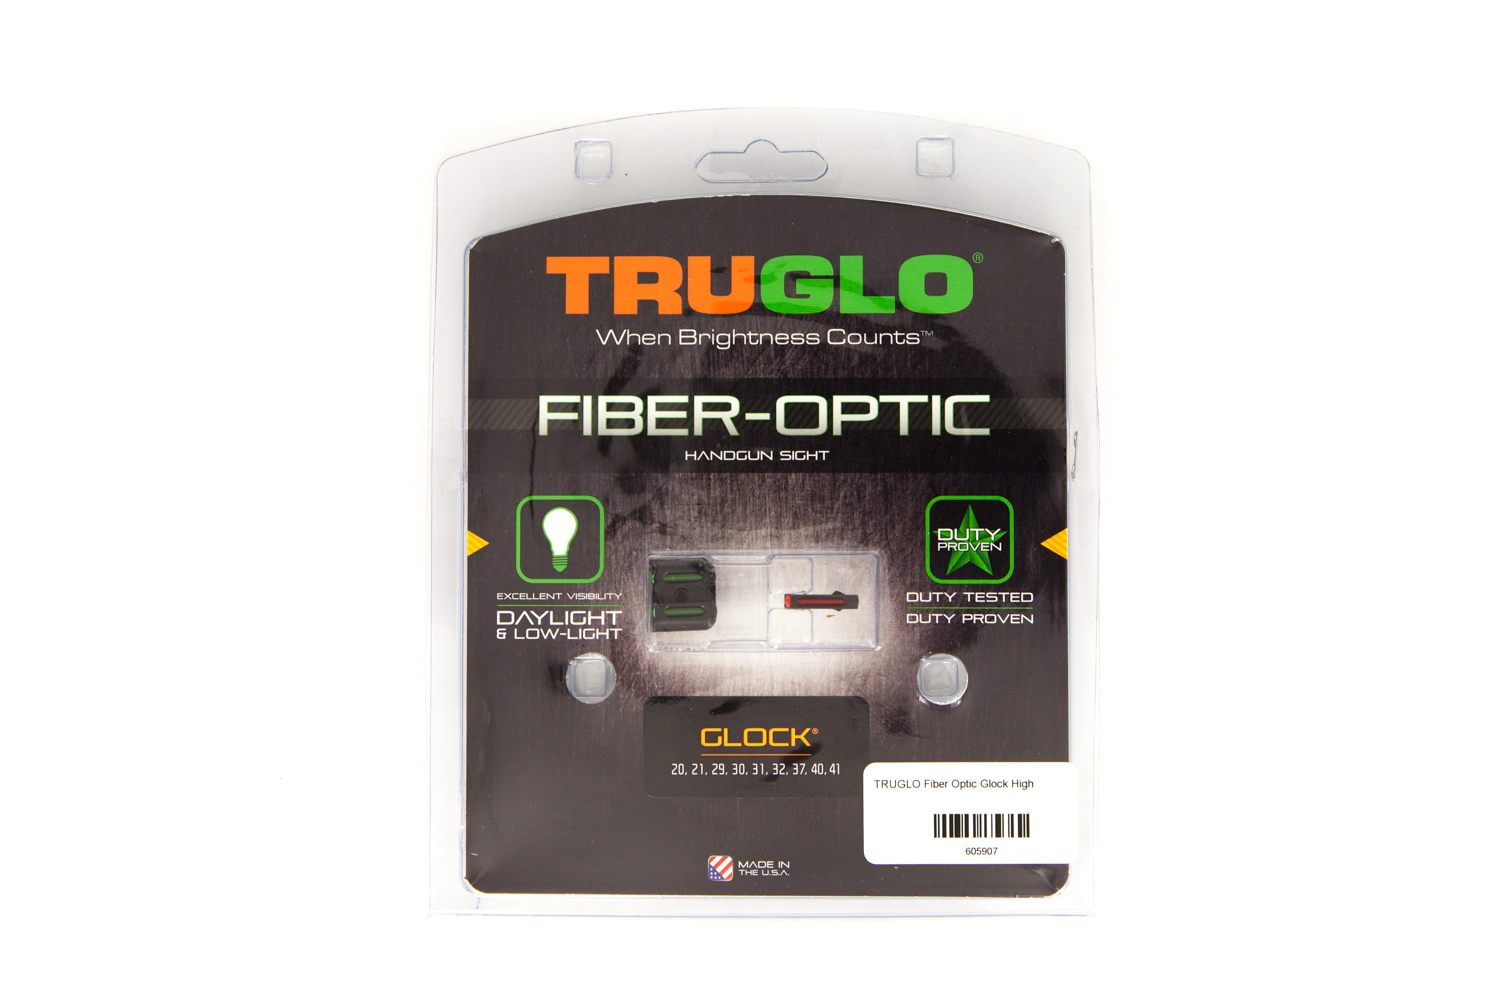 TRUGLO Fiber Optic Glock High